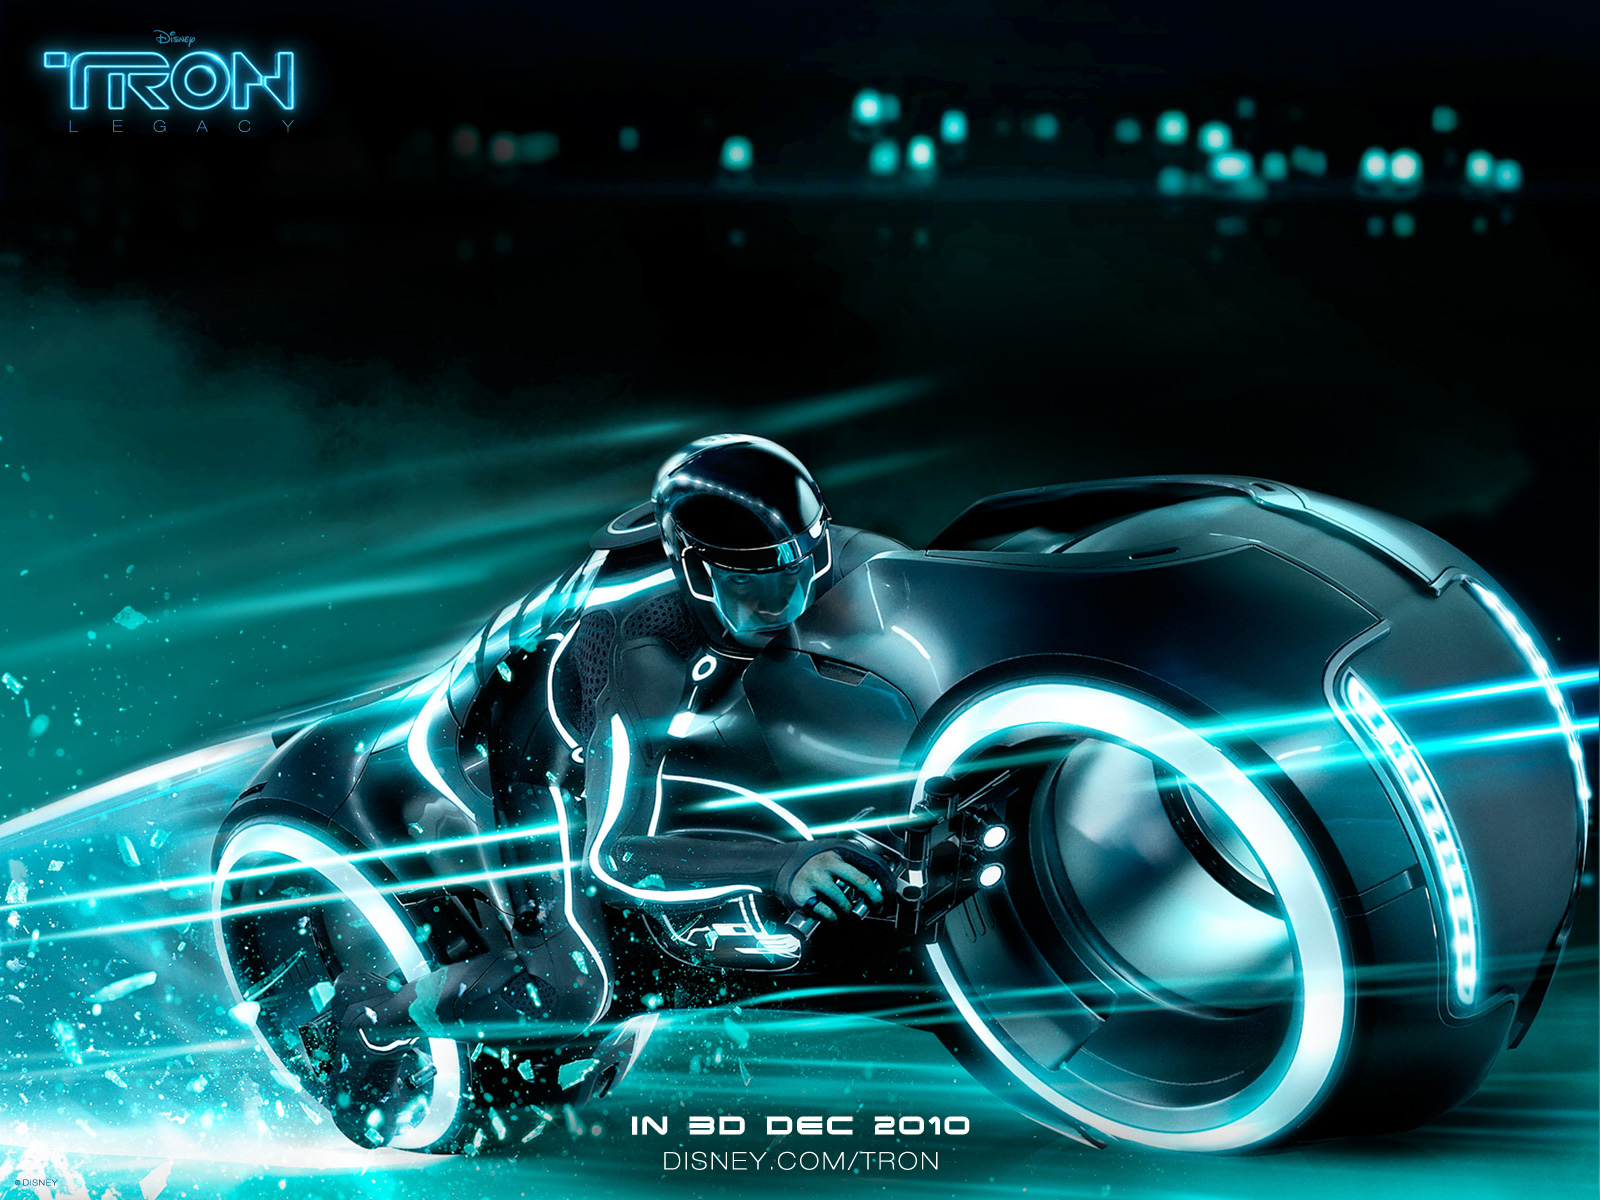 lifesize-tron-light-cycle-4.jpg